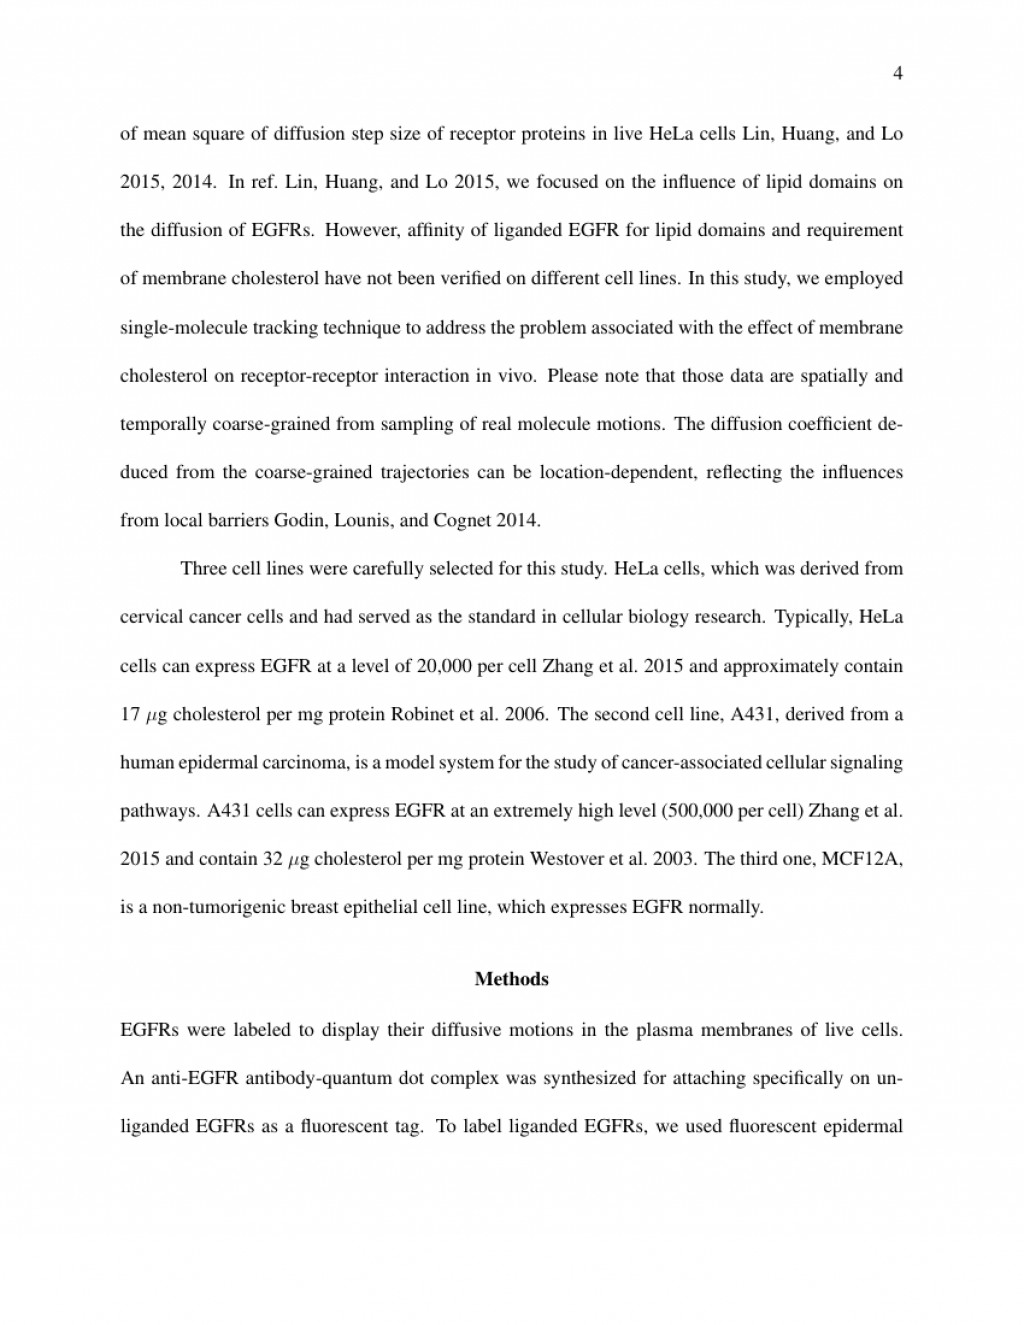 003 Format Of Research Paper Article Astounding A Example Mla Works Cited Sample Outline In Apa Style Large